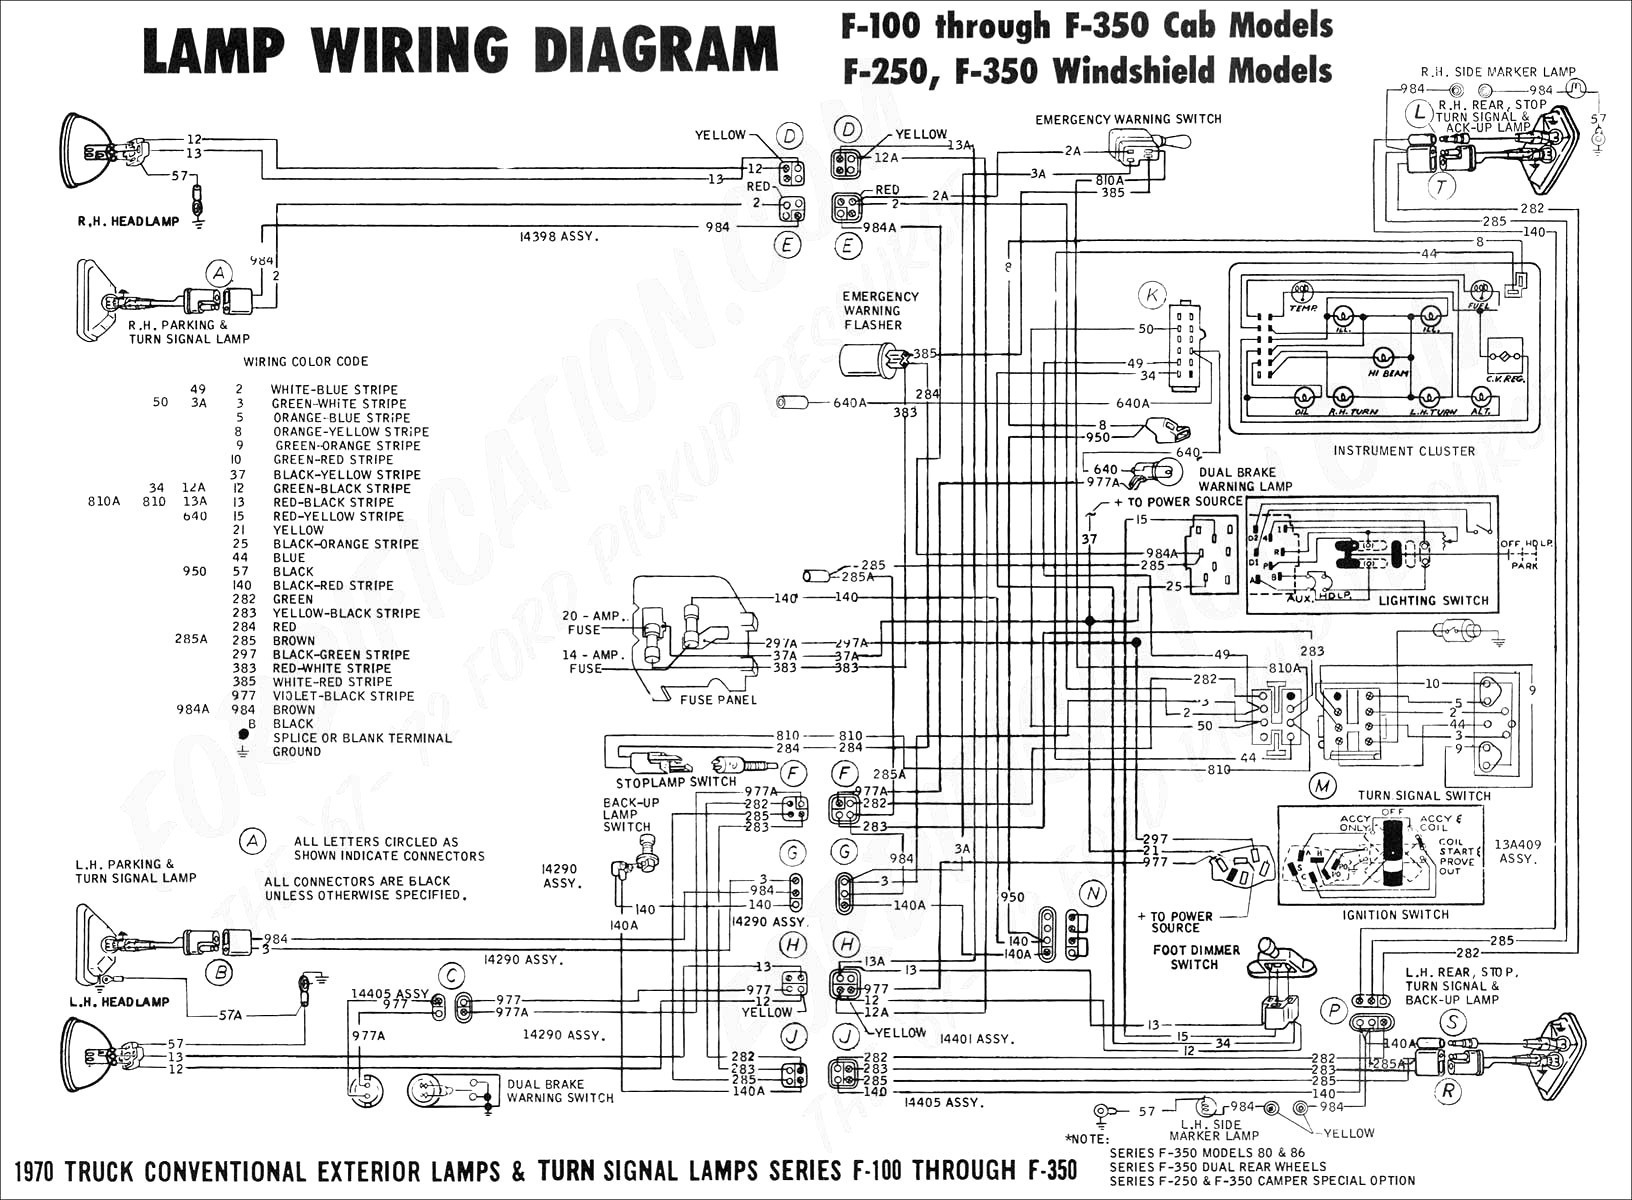 Wiring Diagram Also 2012 Ford Super Duty Wiring Diagram On ... on